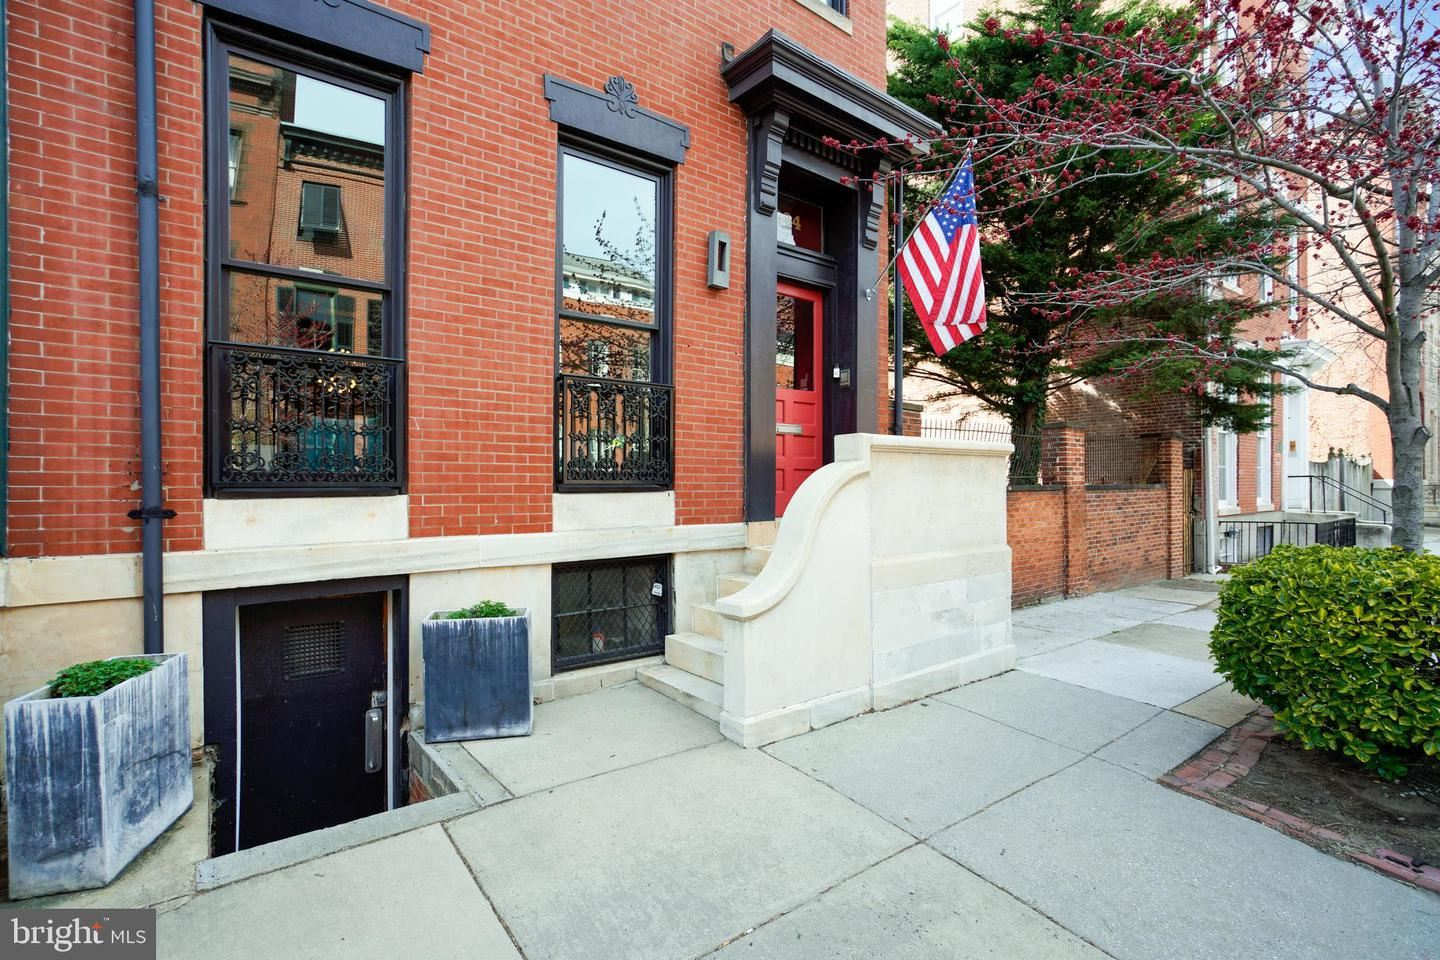 824 PARK AVE, Baltimore, MD 21201 - MLS#: MDBA543374